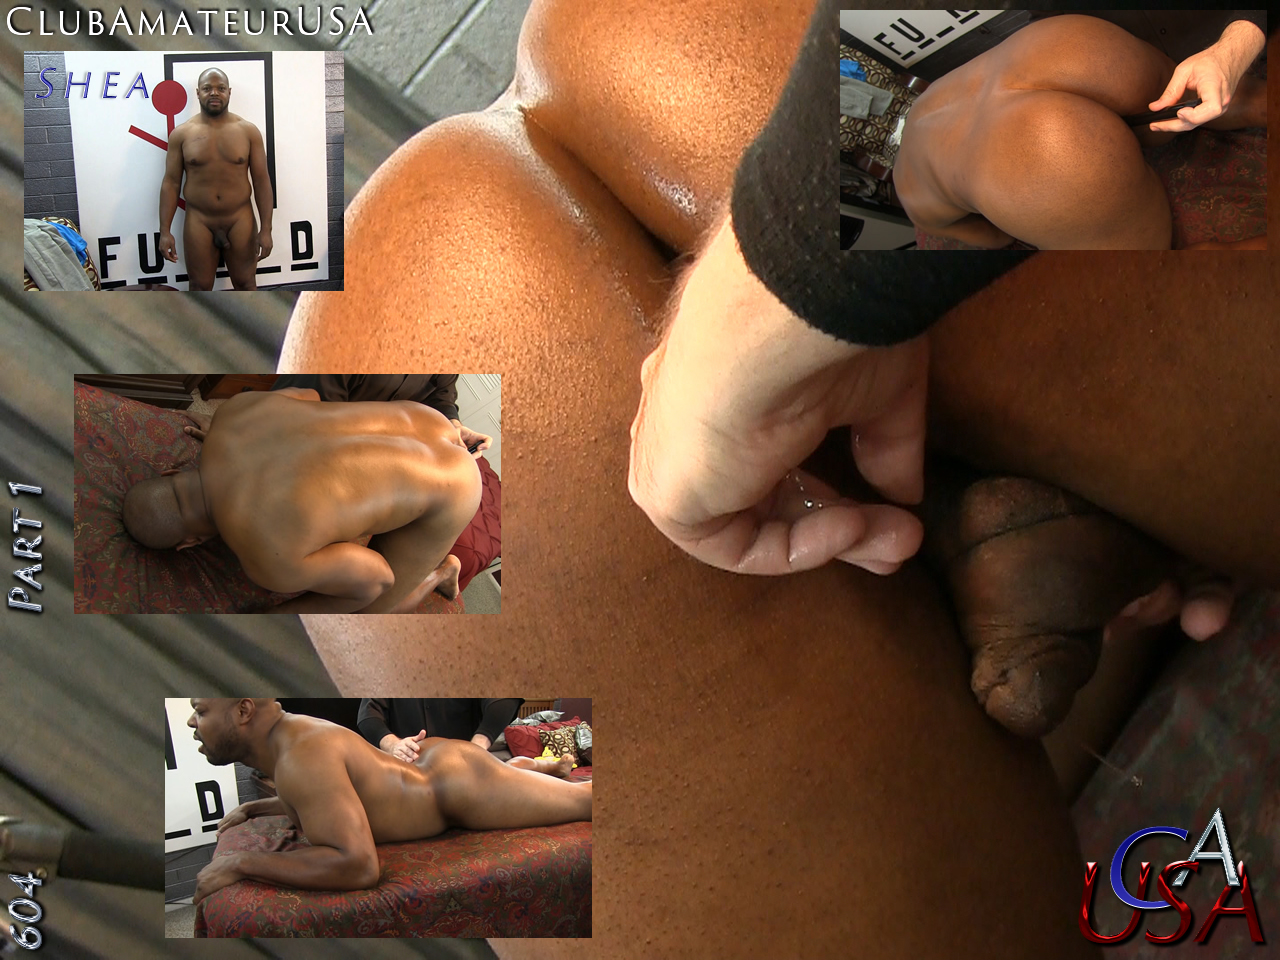 Download or Stream CAUSA 604 Shea - Part 1 - Click Here Now